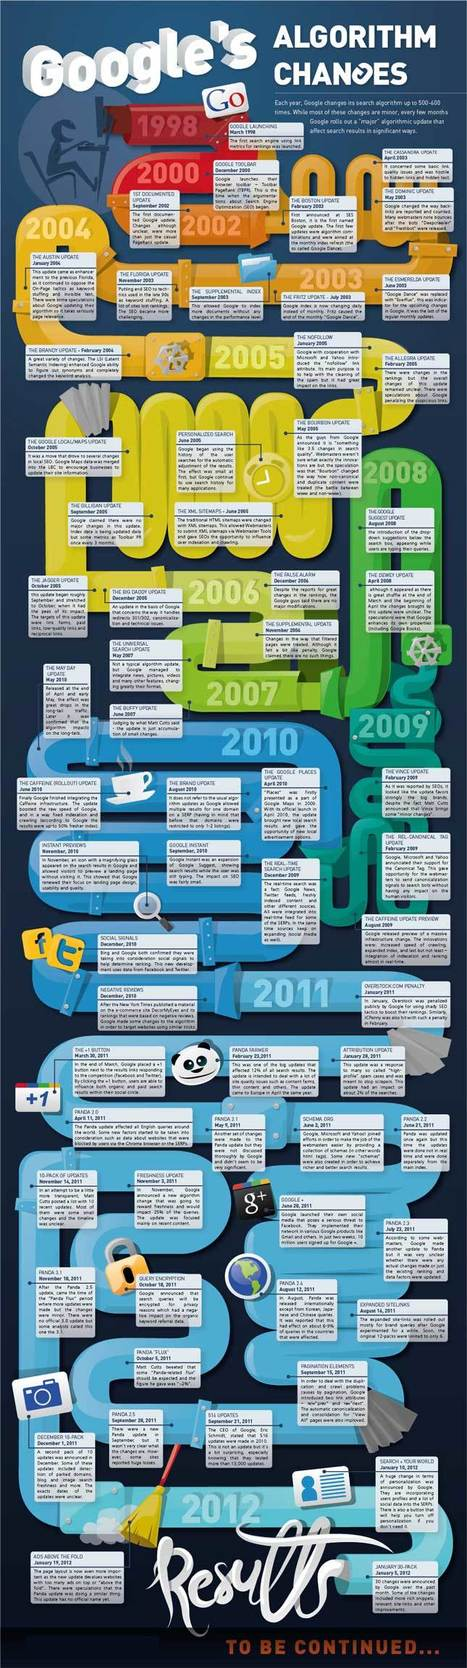 History of Google Algorithm Changes 1998-2012 (Infographic) - Florida Technology Journal | Google Algorithm | Scoop.it